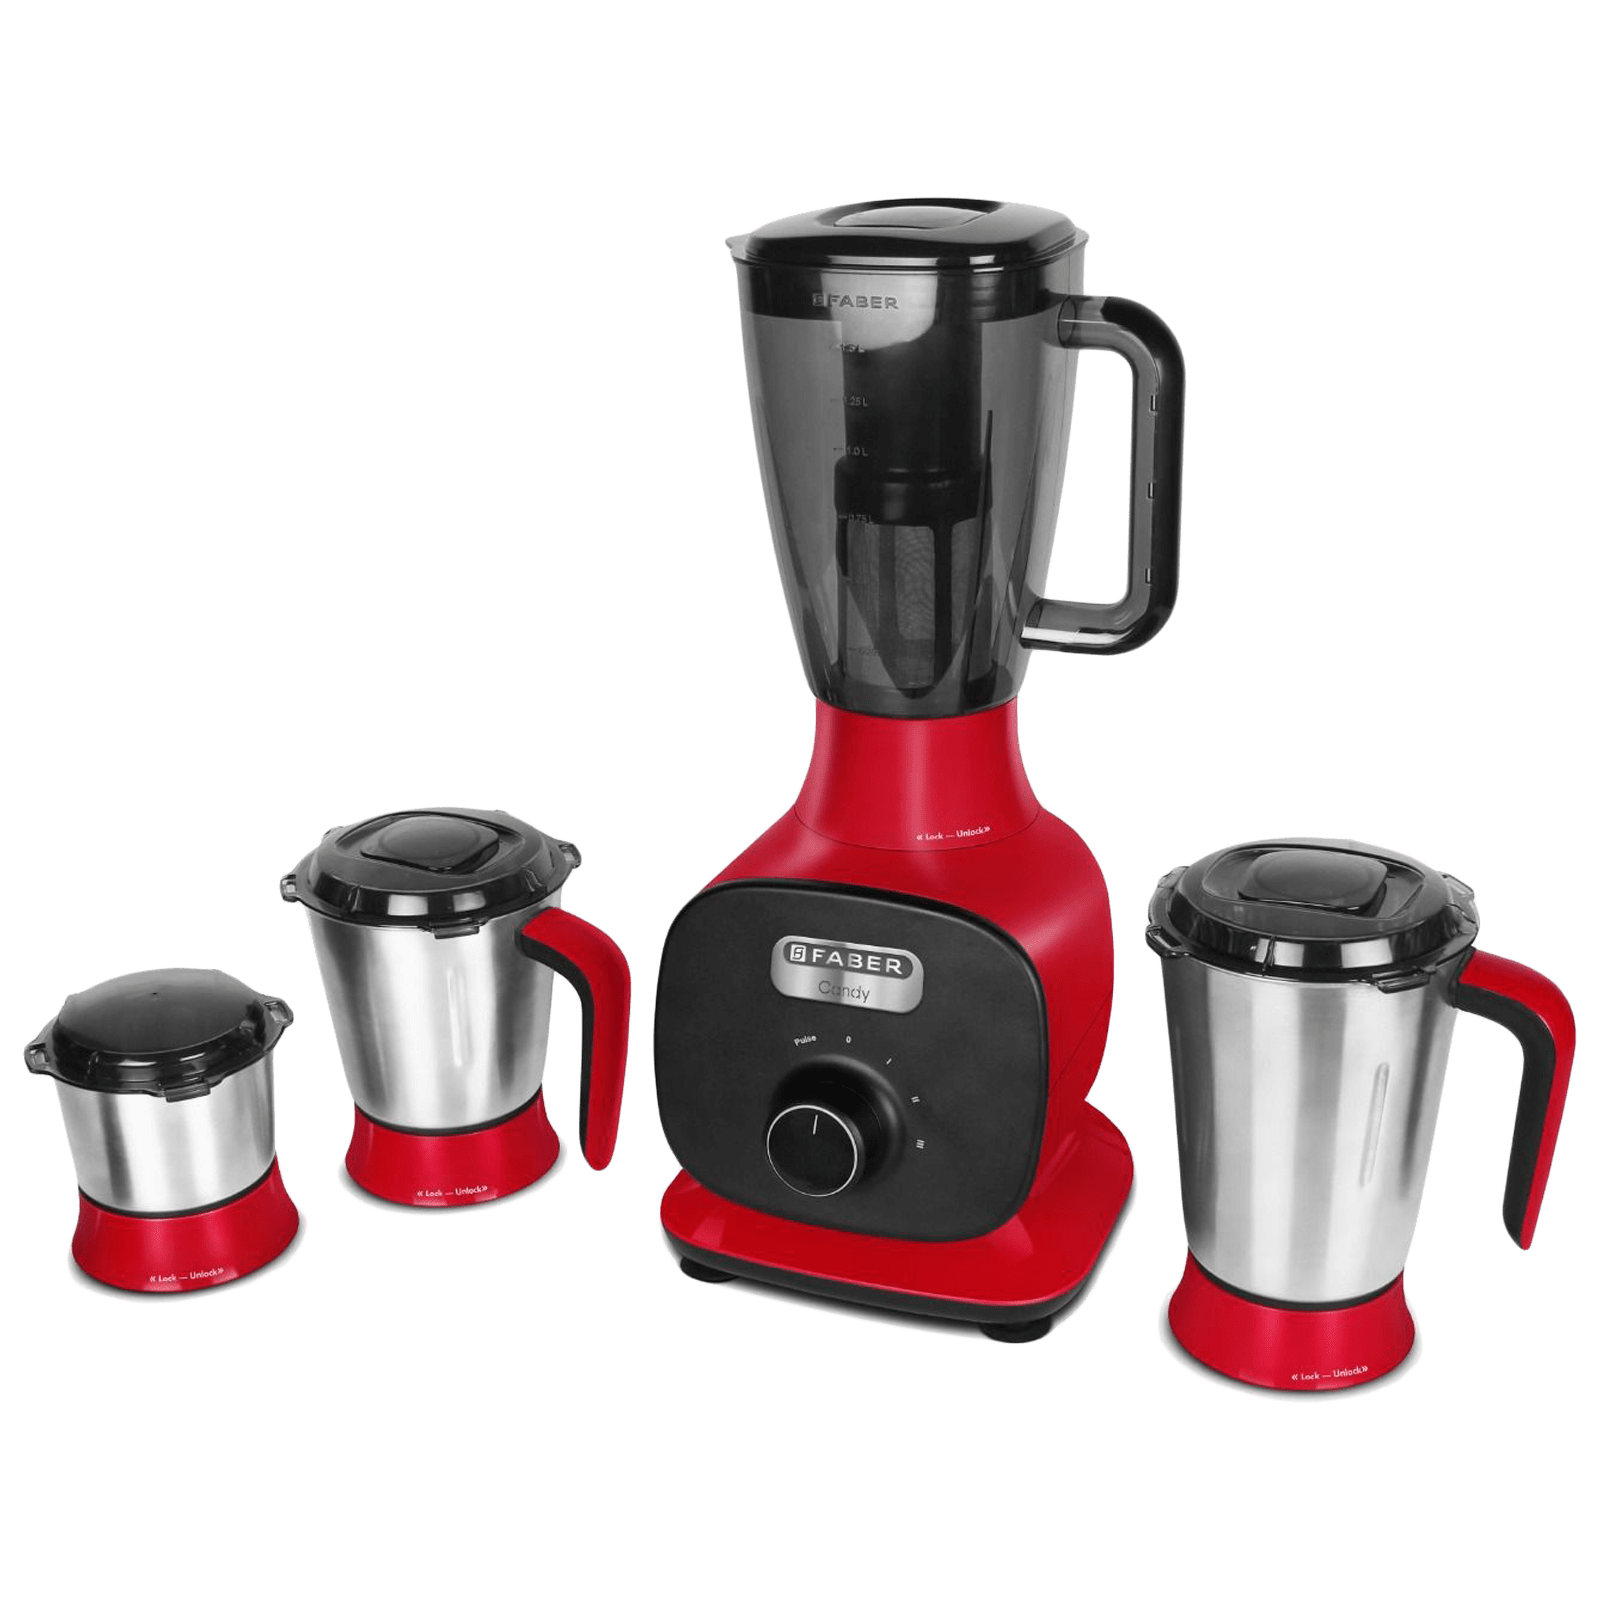 Faber Candy 800 Watts 4 Jars Mixer Grinder (Copper Motor, 131.0628.641, Mystic Red)